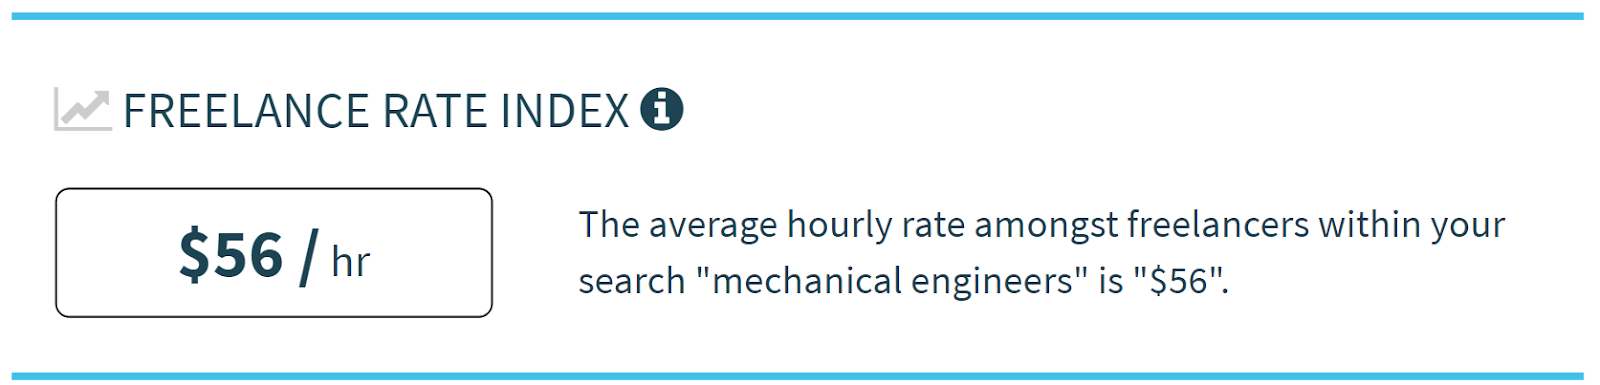 The average hourly rate of a freelance mechanical engineer is $ 56.